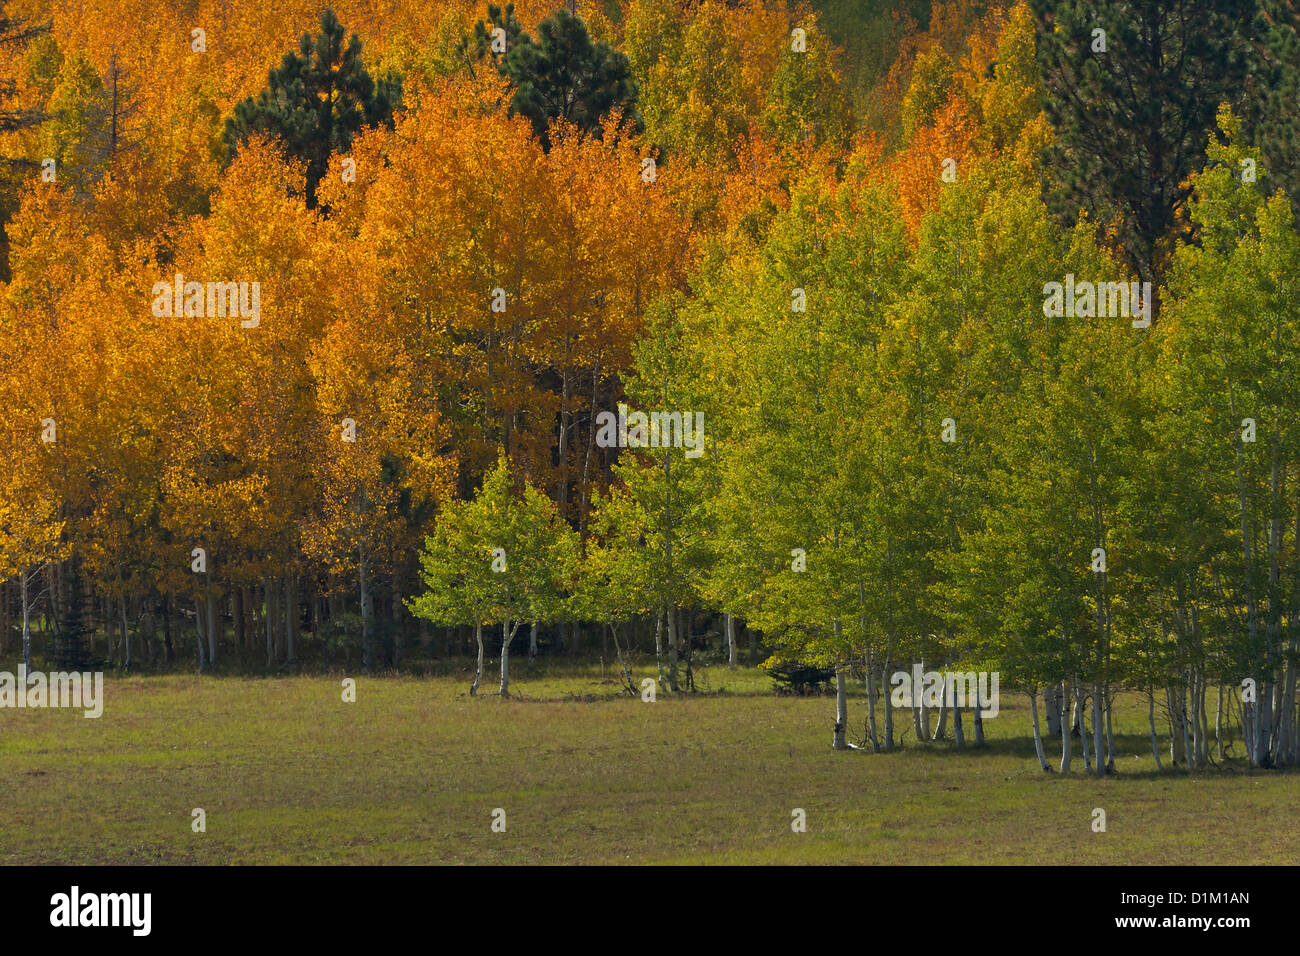 Aspen trees and Lodgepole Pines in fall, Kaibab National Forest, Grand Canyon National Park, Arizona, USA - Stock Image